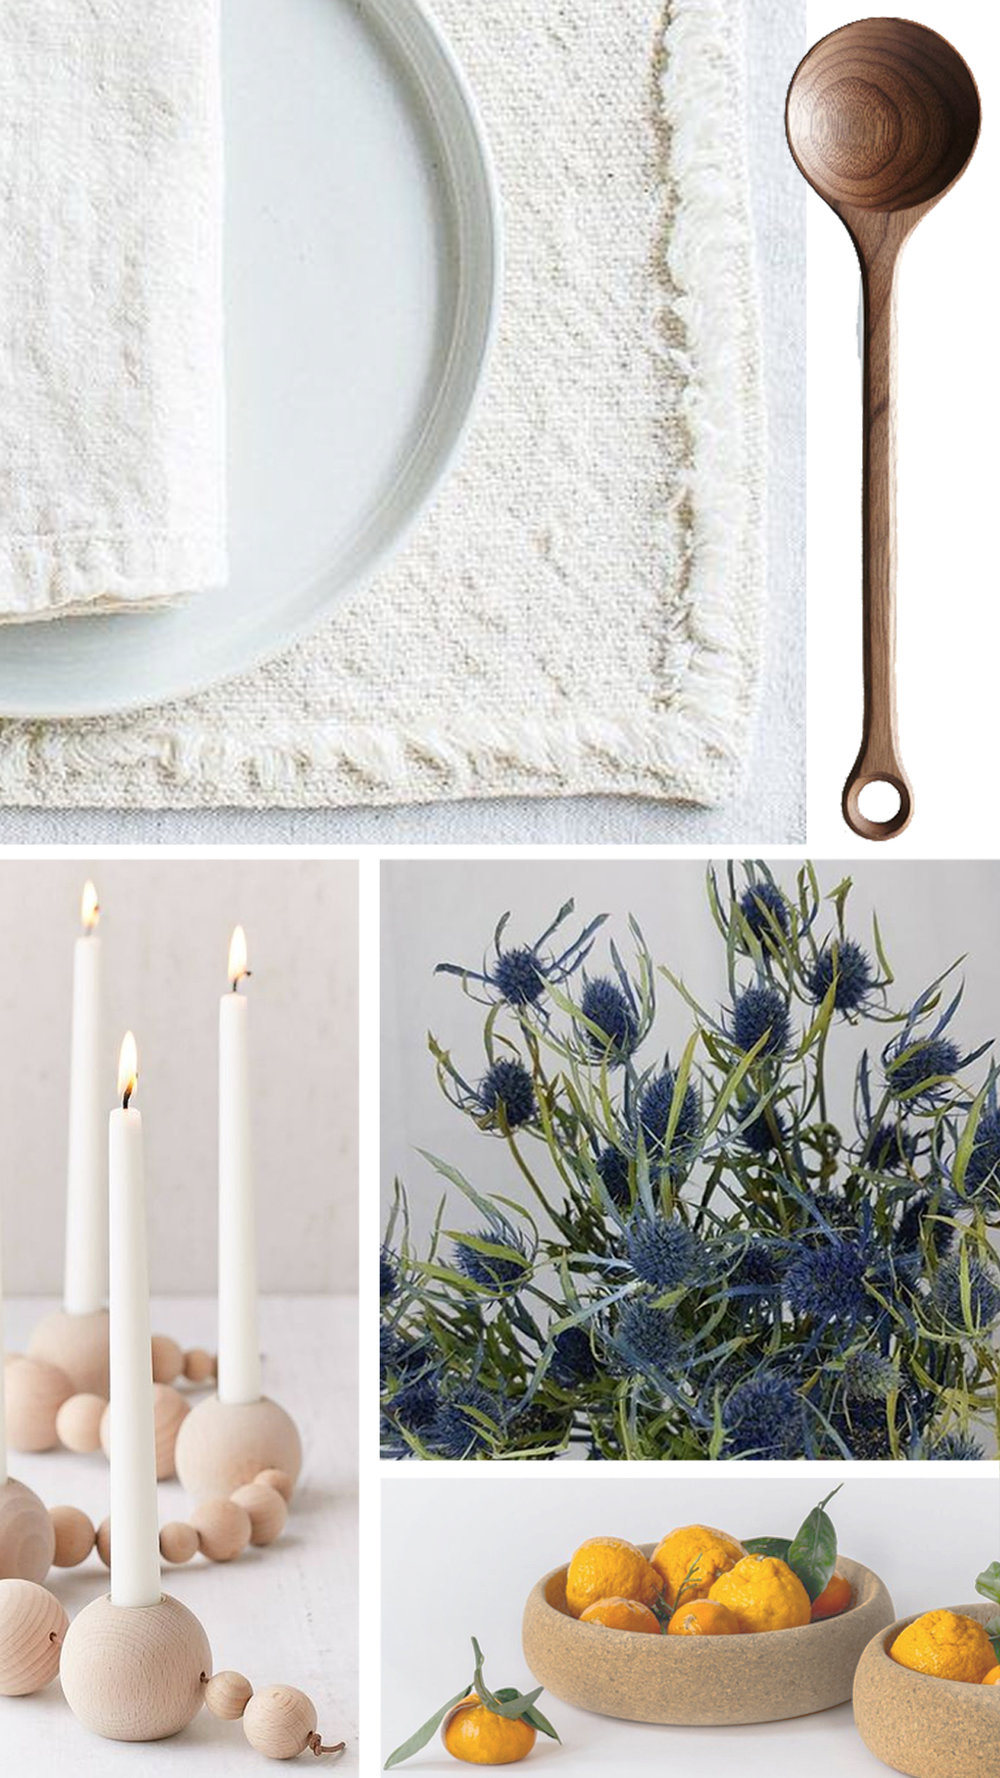 table - Create a neutral base with natural linen tablecloth, placemats or runner, layer with wooden candle holders, mix and match with darker wood tones or cork for serving ware. Pops of green and blue in dried thistle evoke twilight hues.